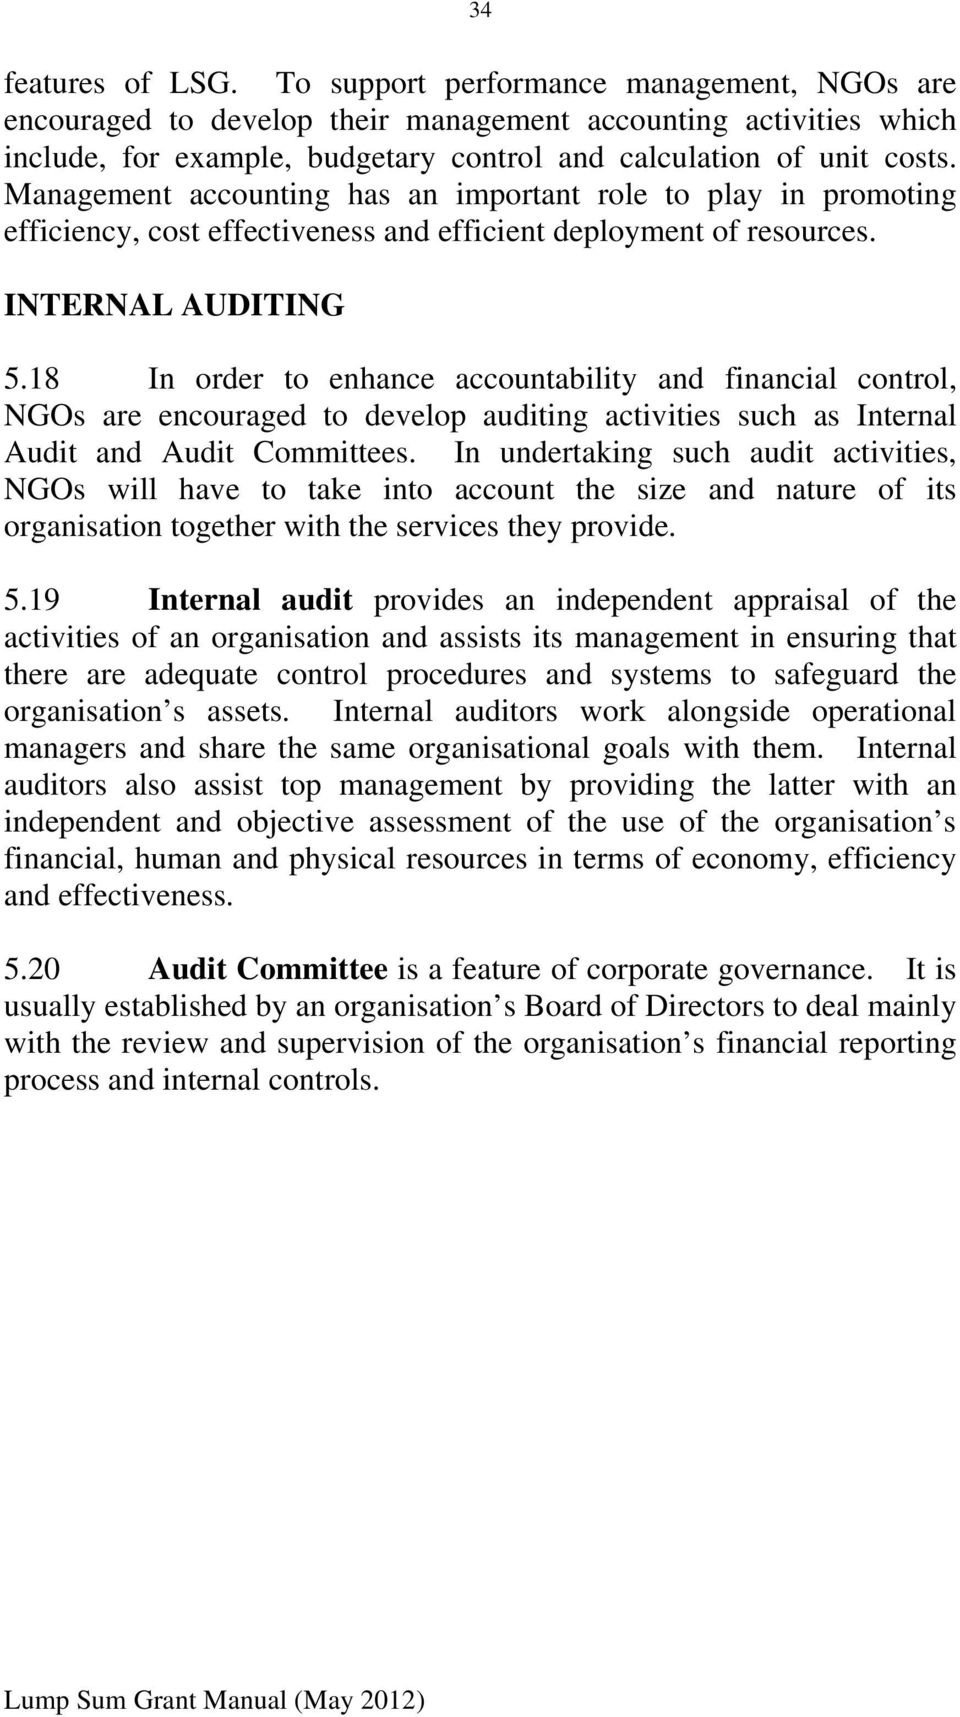 Management accounting has an important role to play in promoting efficiency, cost effectiveness and efficient deployment of resources. INTERNAL AUDITING 5.